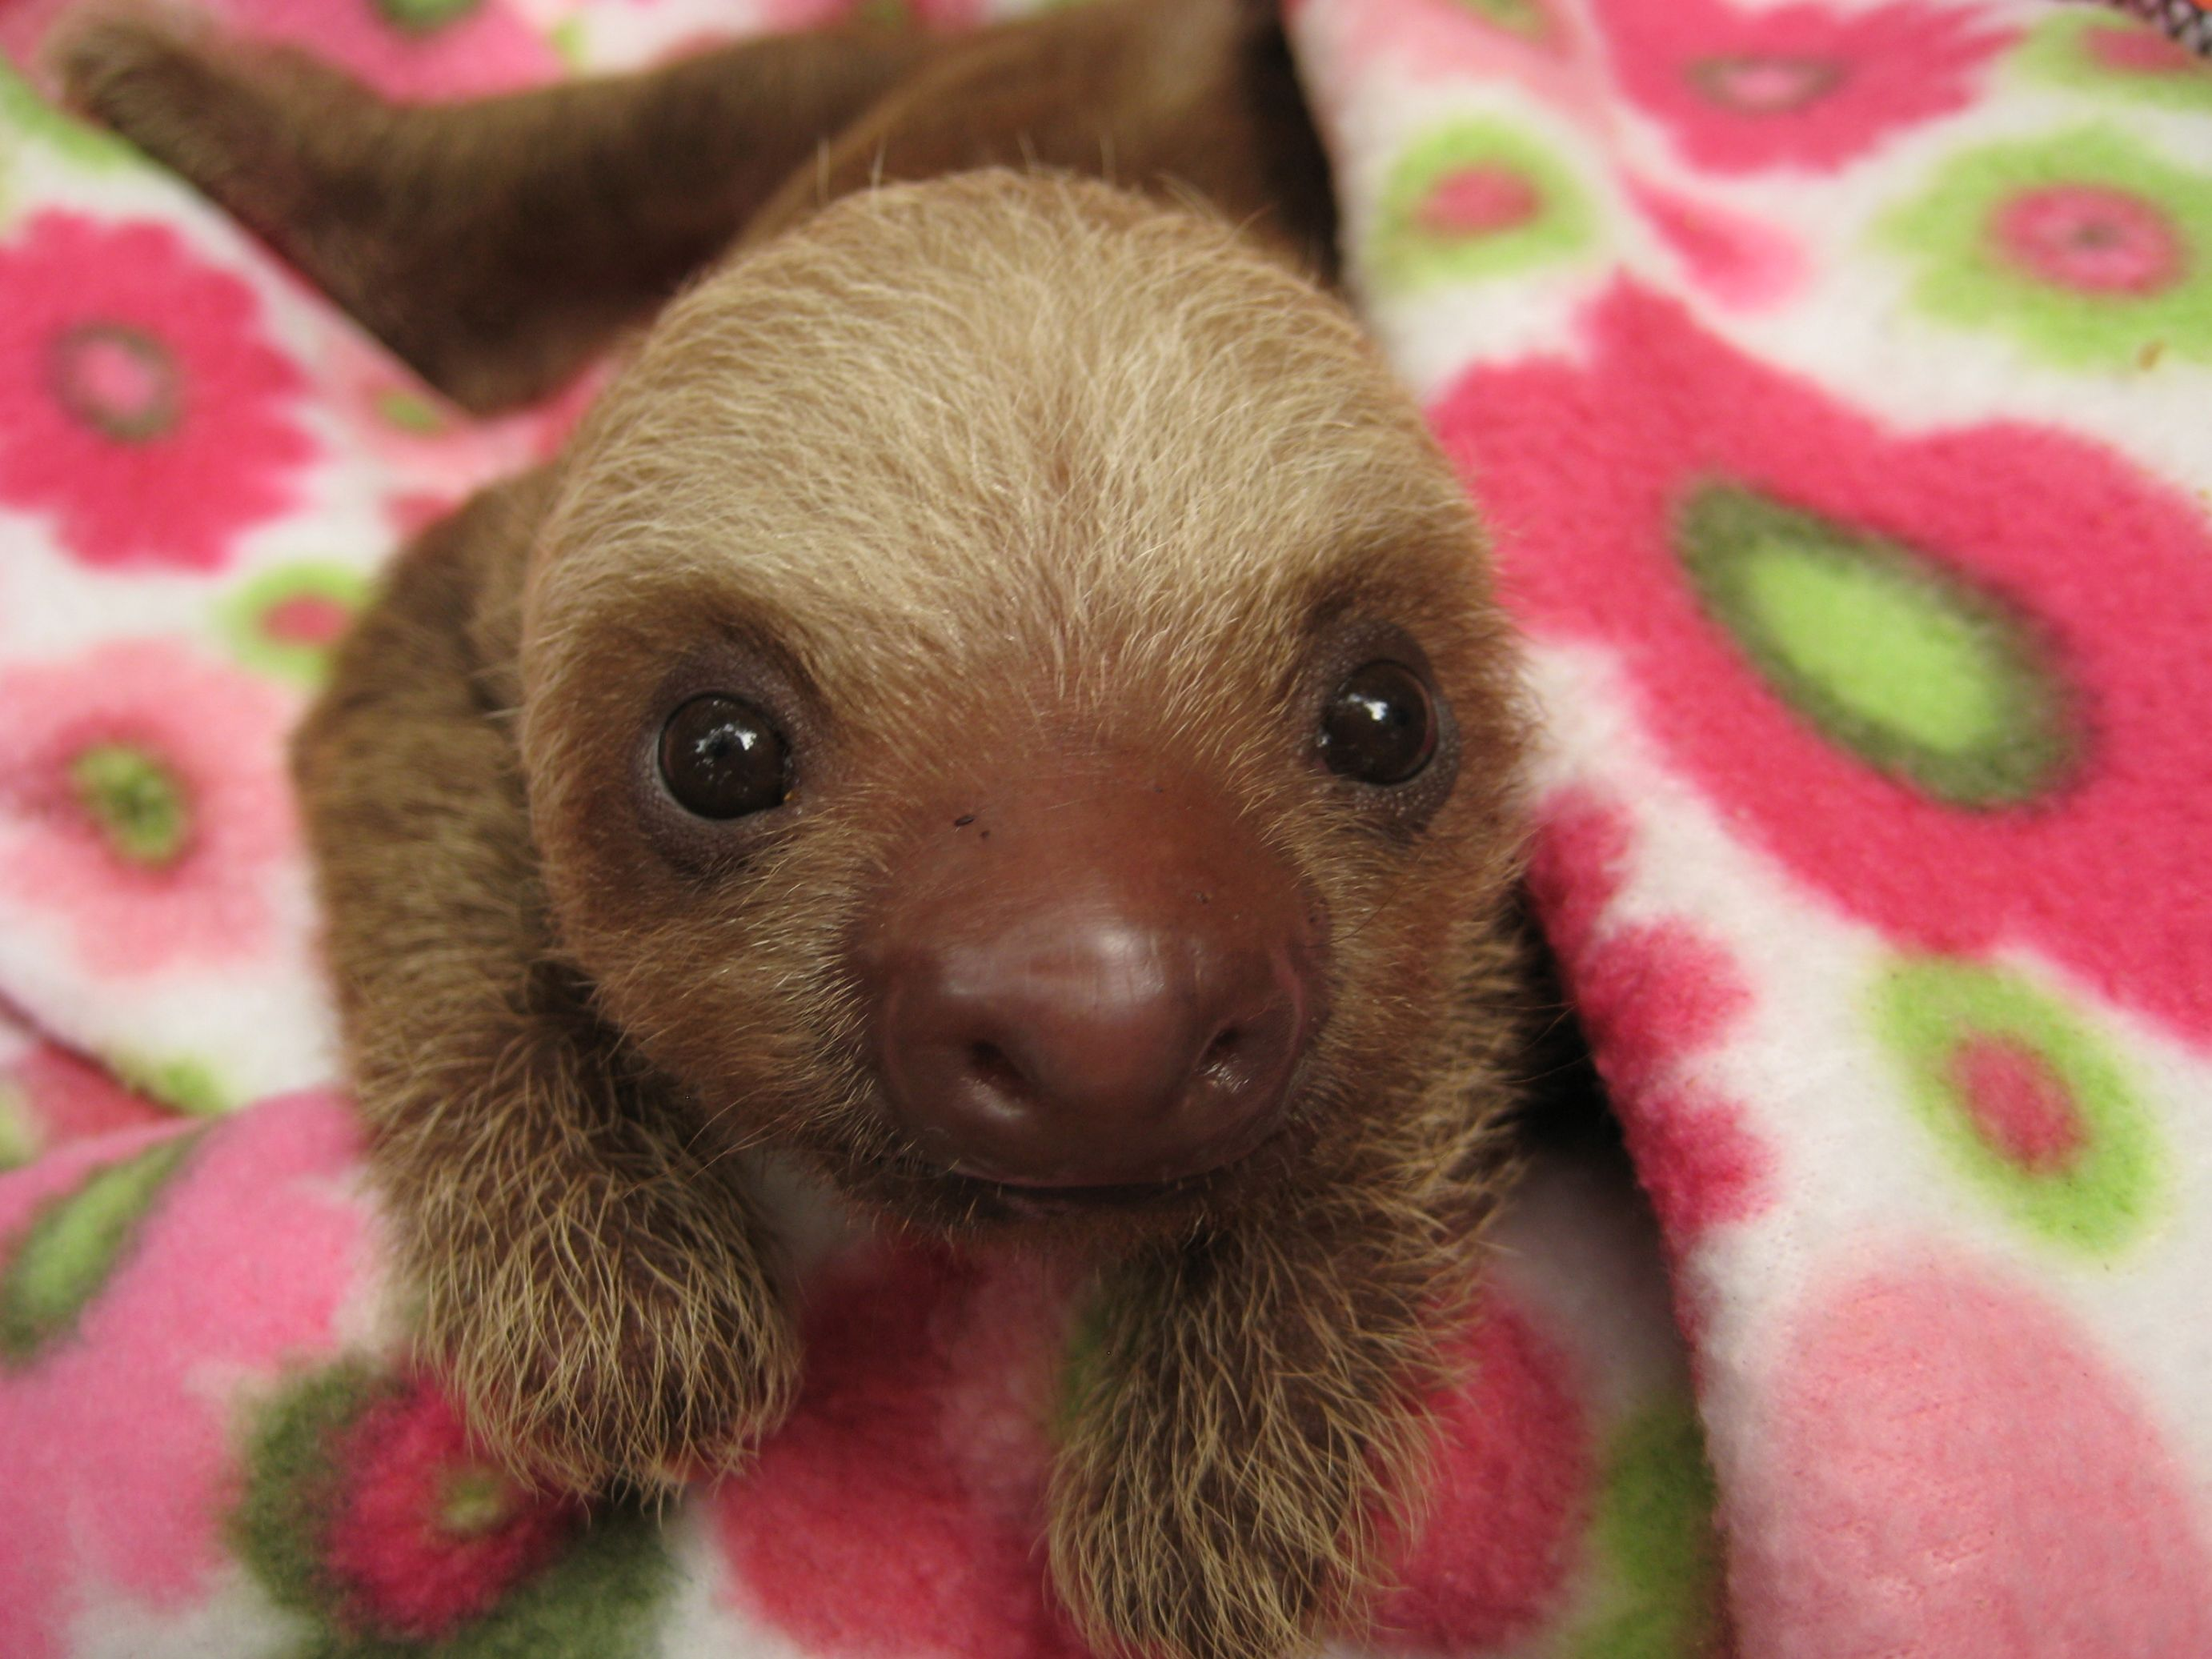 Life Success Quotes Hd Wallpapers Download Baby Sloth Wallpaper Gallery